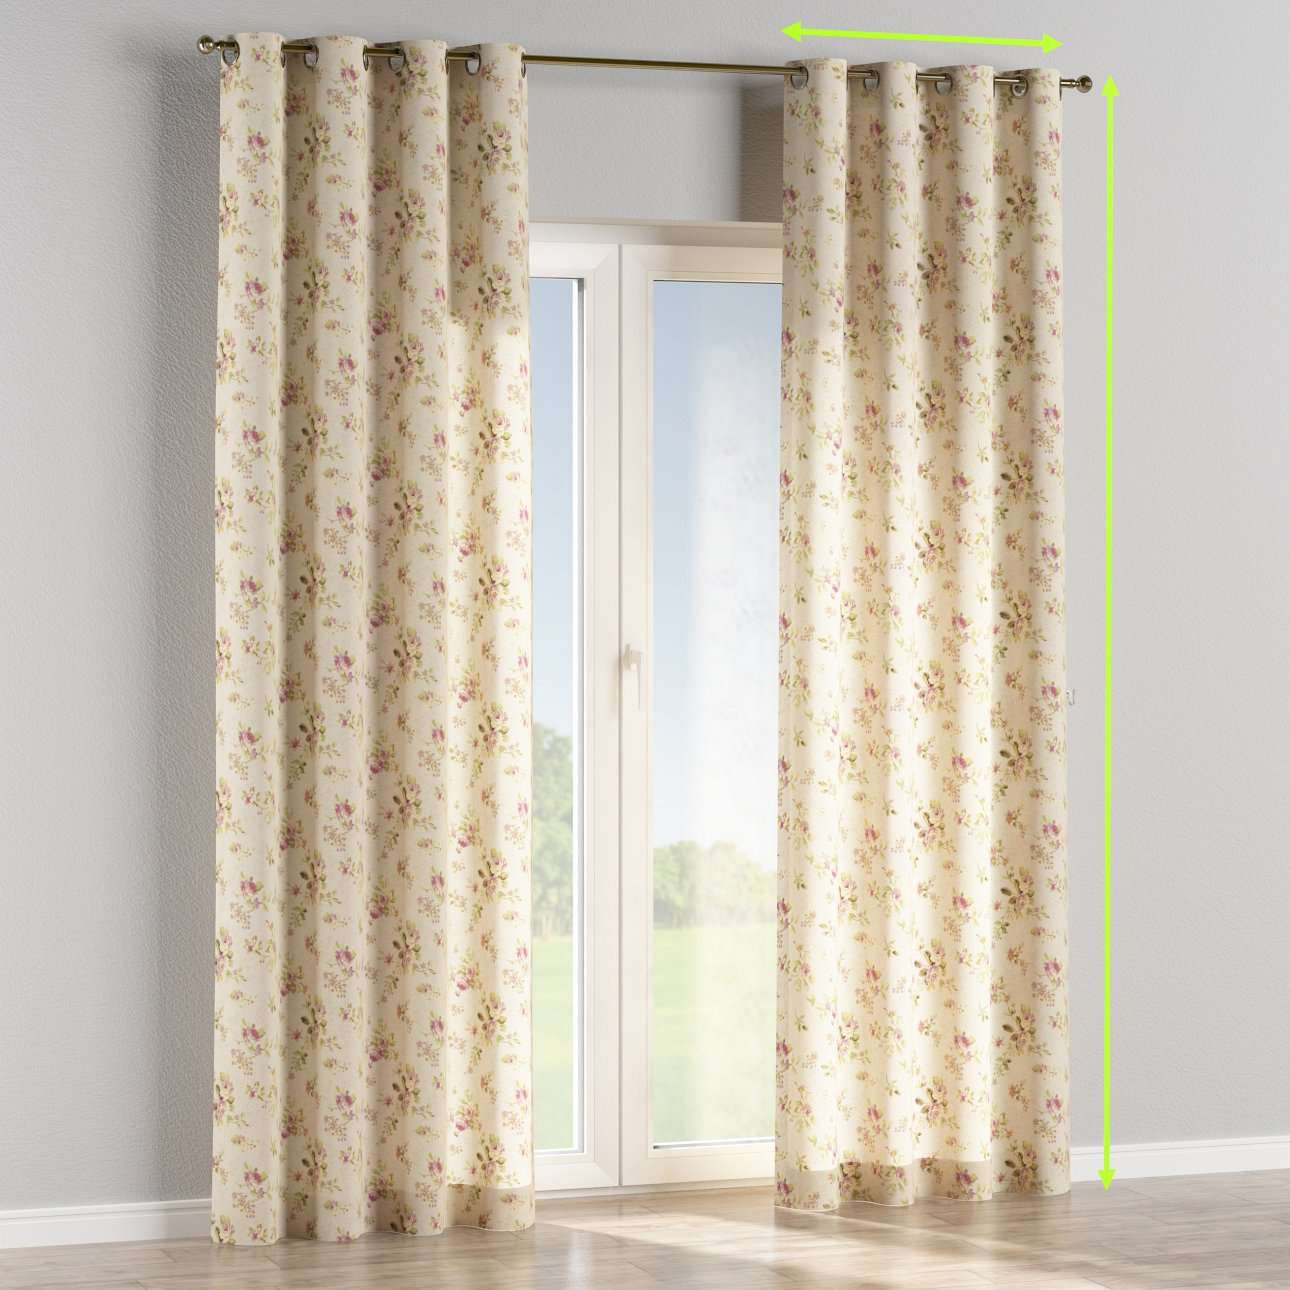 Eyelet curtains in collection Londres, fabric: 122-07